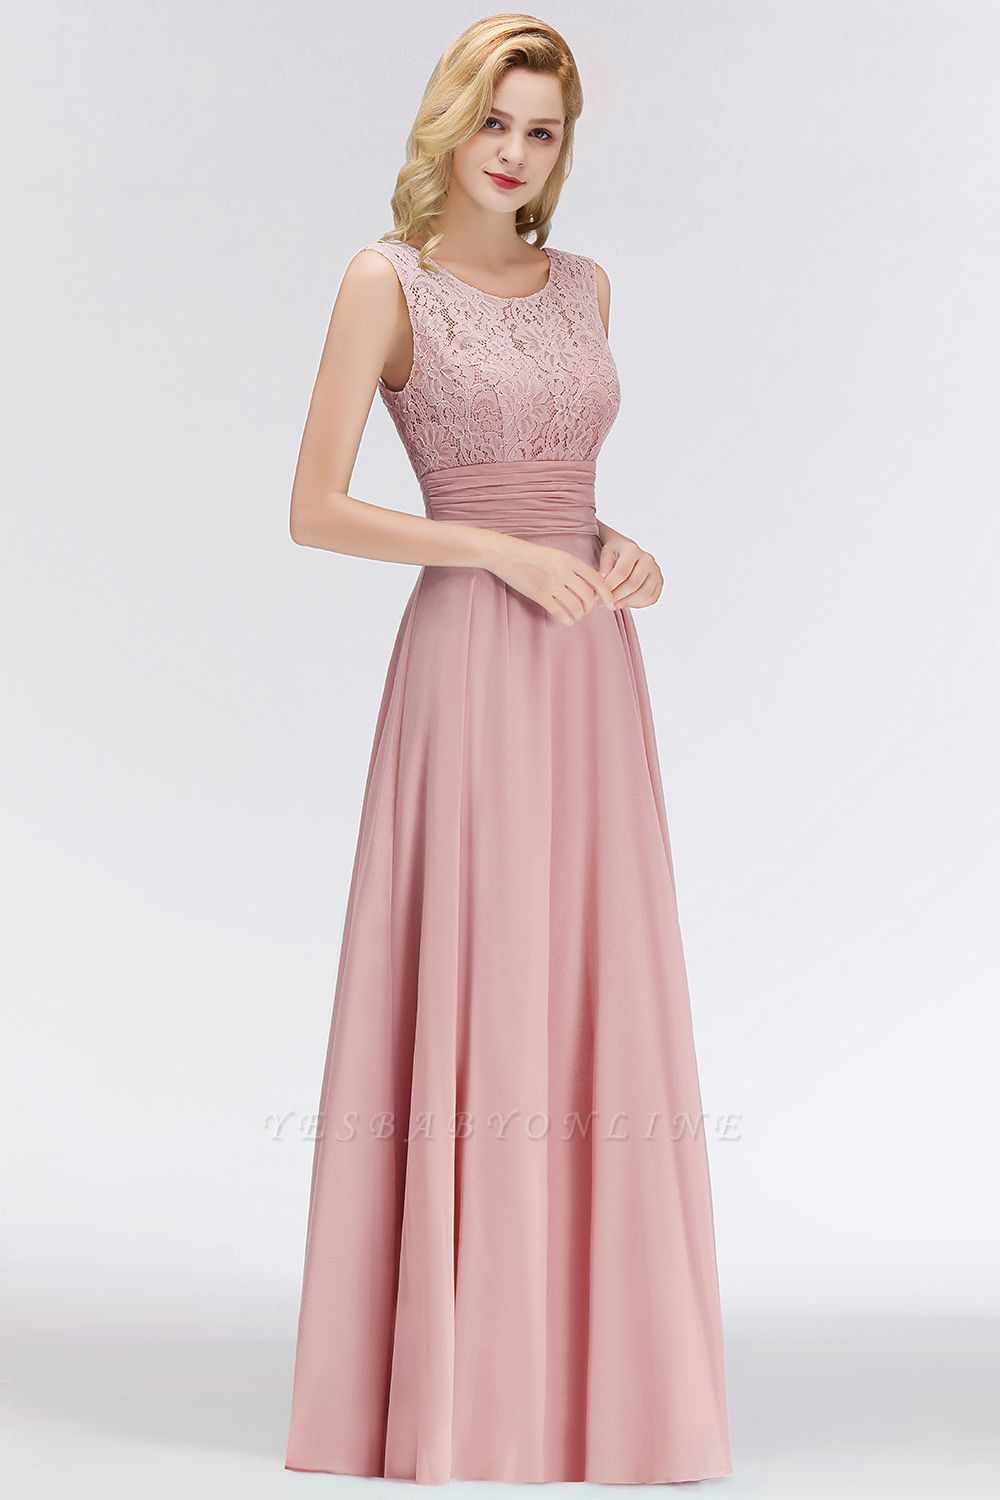 Long Lace Floor-Length Sleeveless Scoop Gorgeous Chiffon Bridesmaid Dress